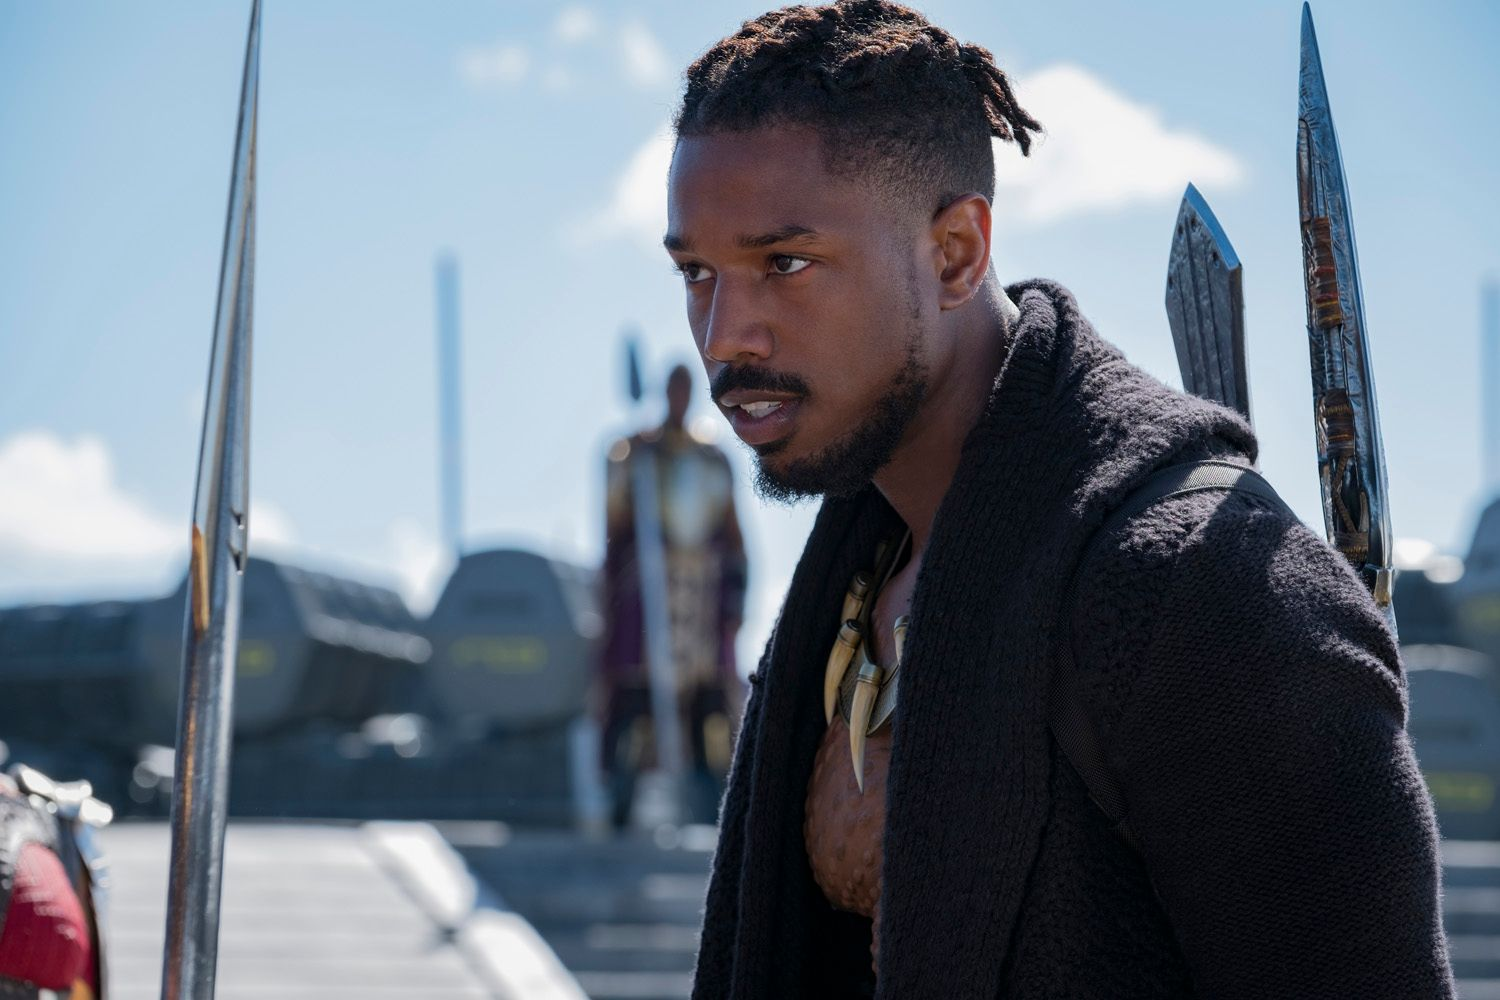 Black Panther Pulls In Another Strong Weekend With Revenue At $108 Million